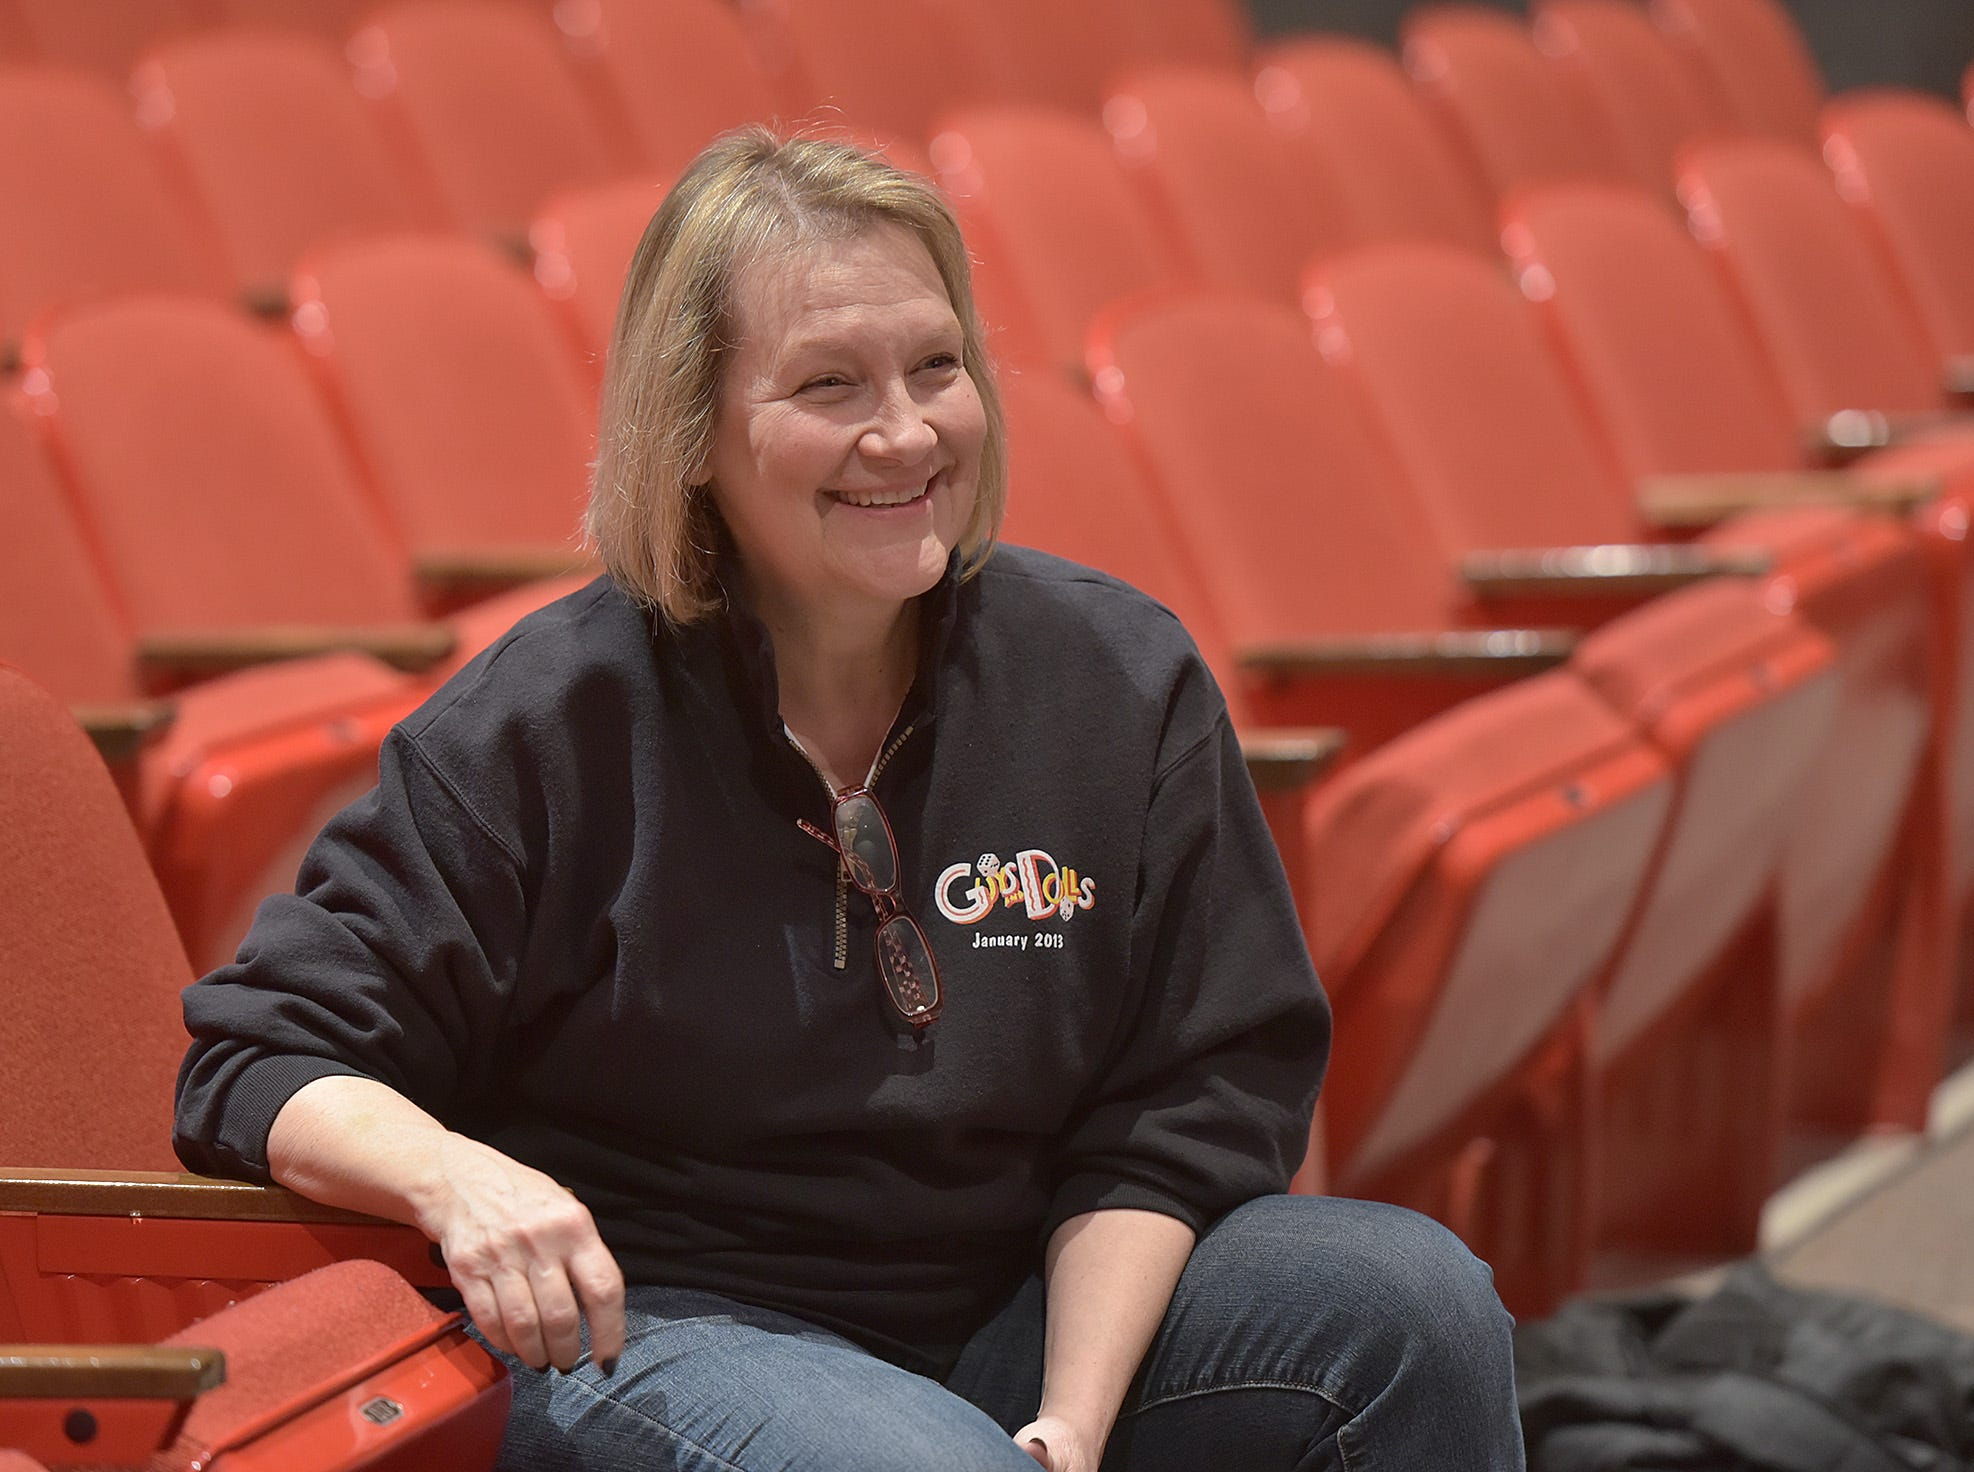 Sue Cobb watches Dean Cobb direct the students in The Election. The Cobbs retired from teaching back in 2011 but still come back whenever there's a show. They are wondering what to do when Harrison closes in June.